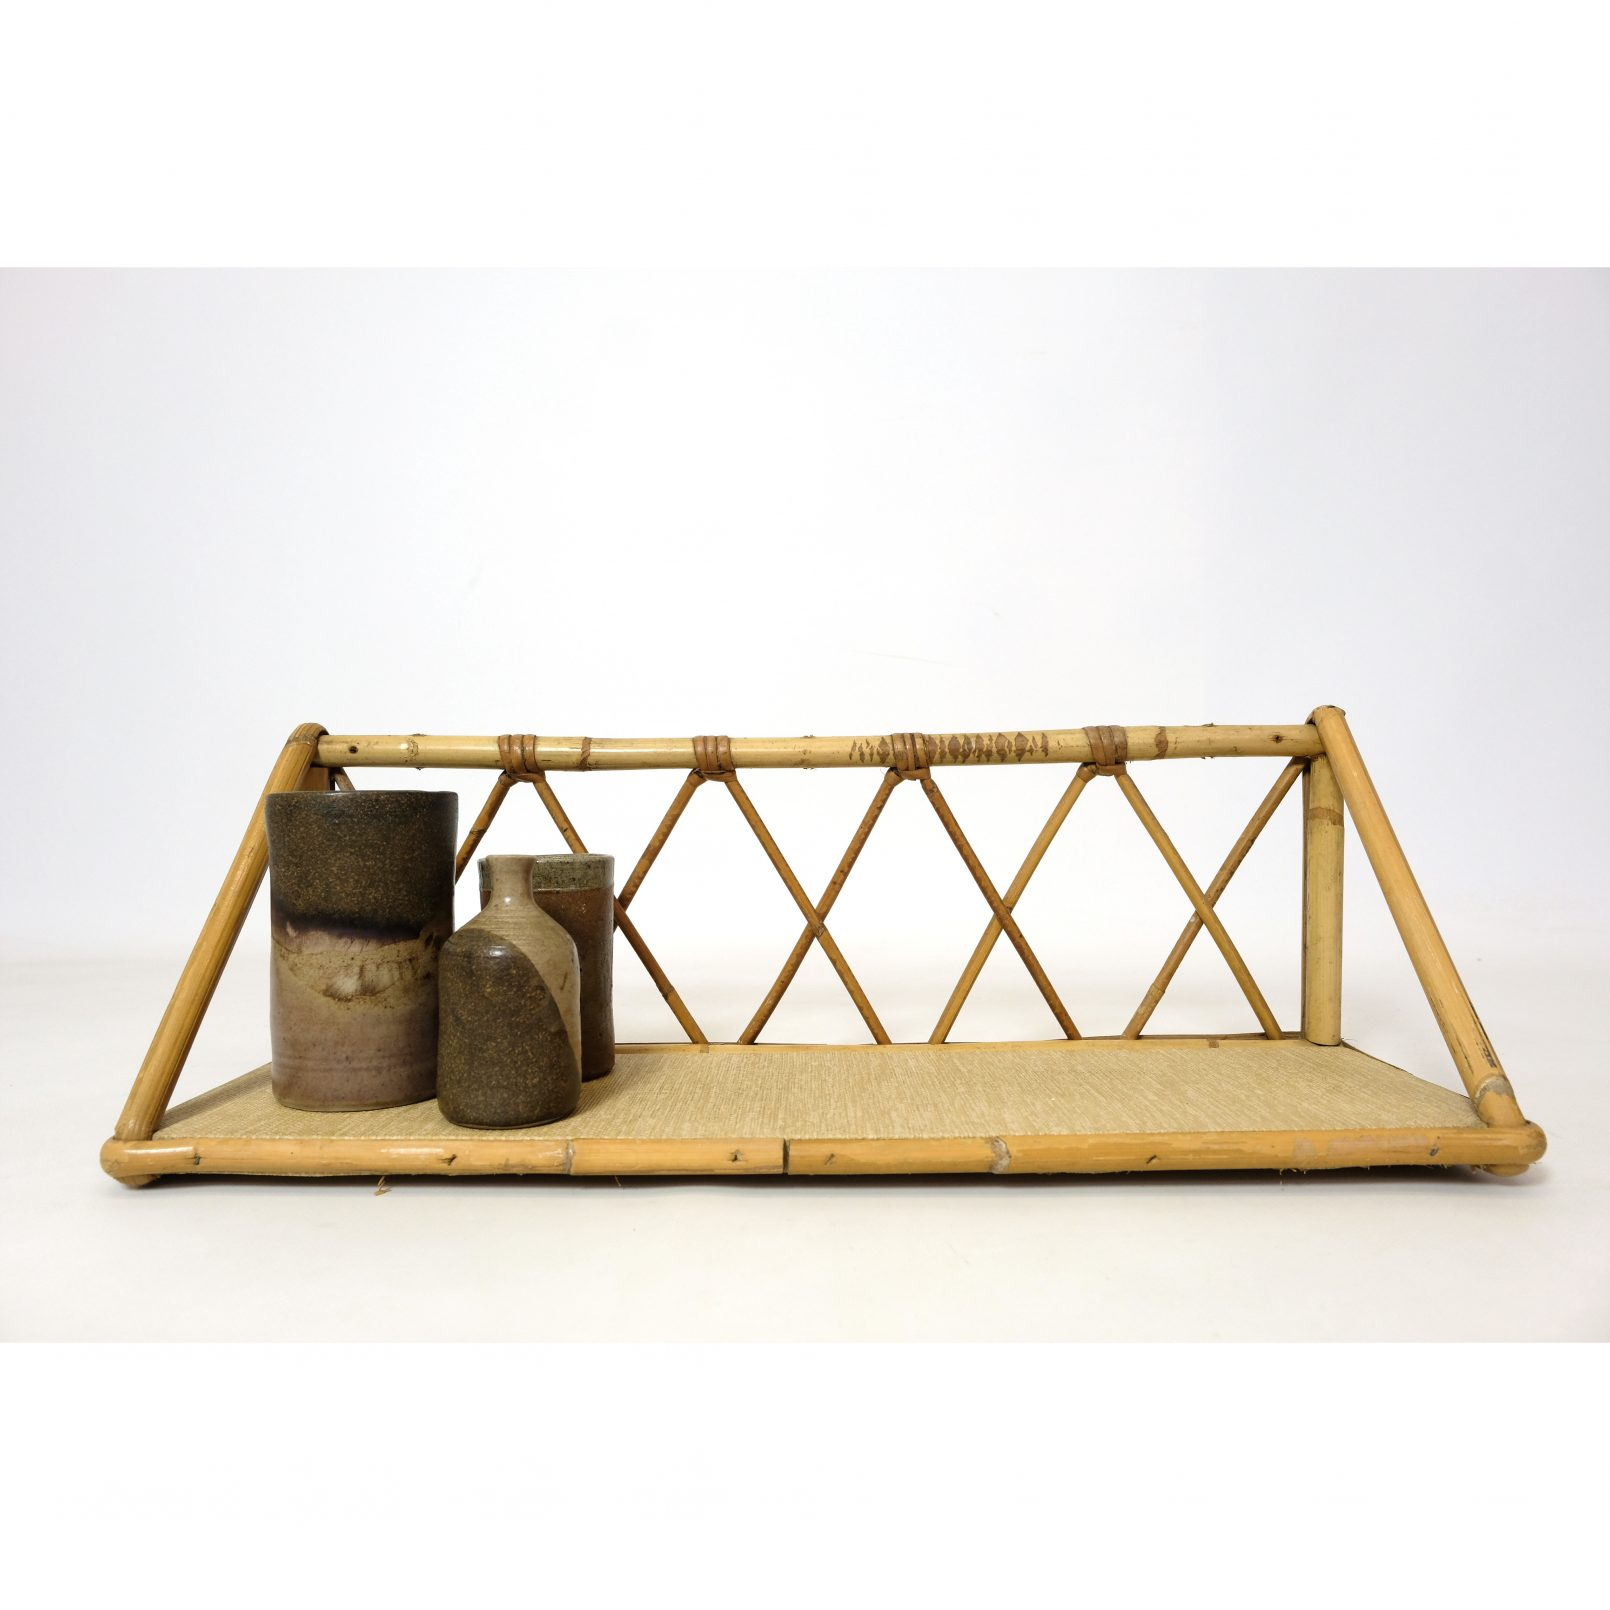 French rattan shelf from the sixties.